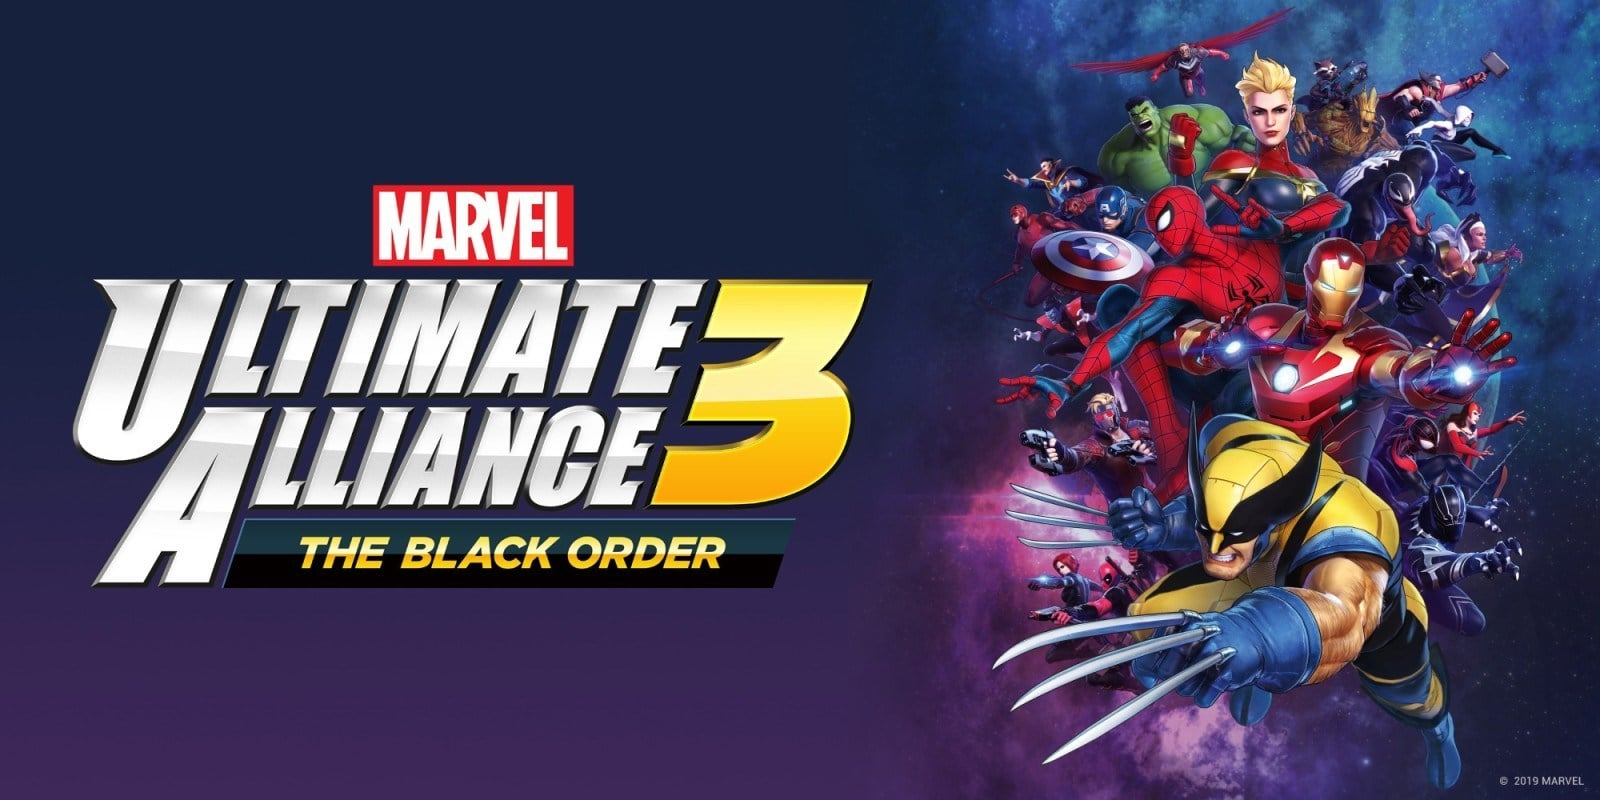 Marvel Ultimate Alliance 3 Pc Version Full Game Free Download